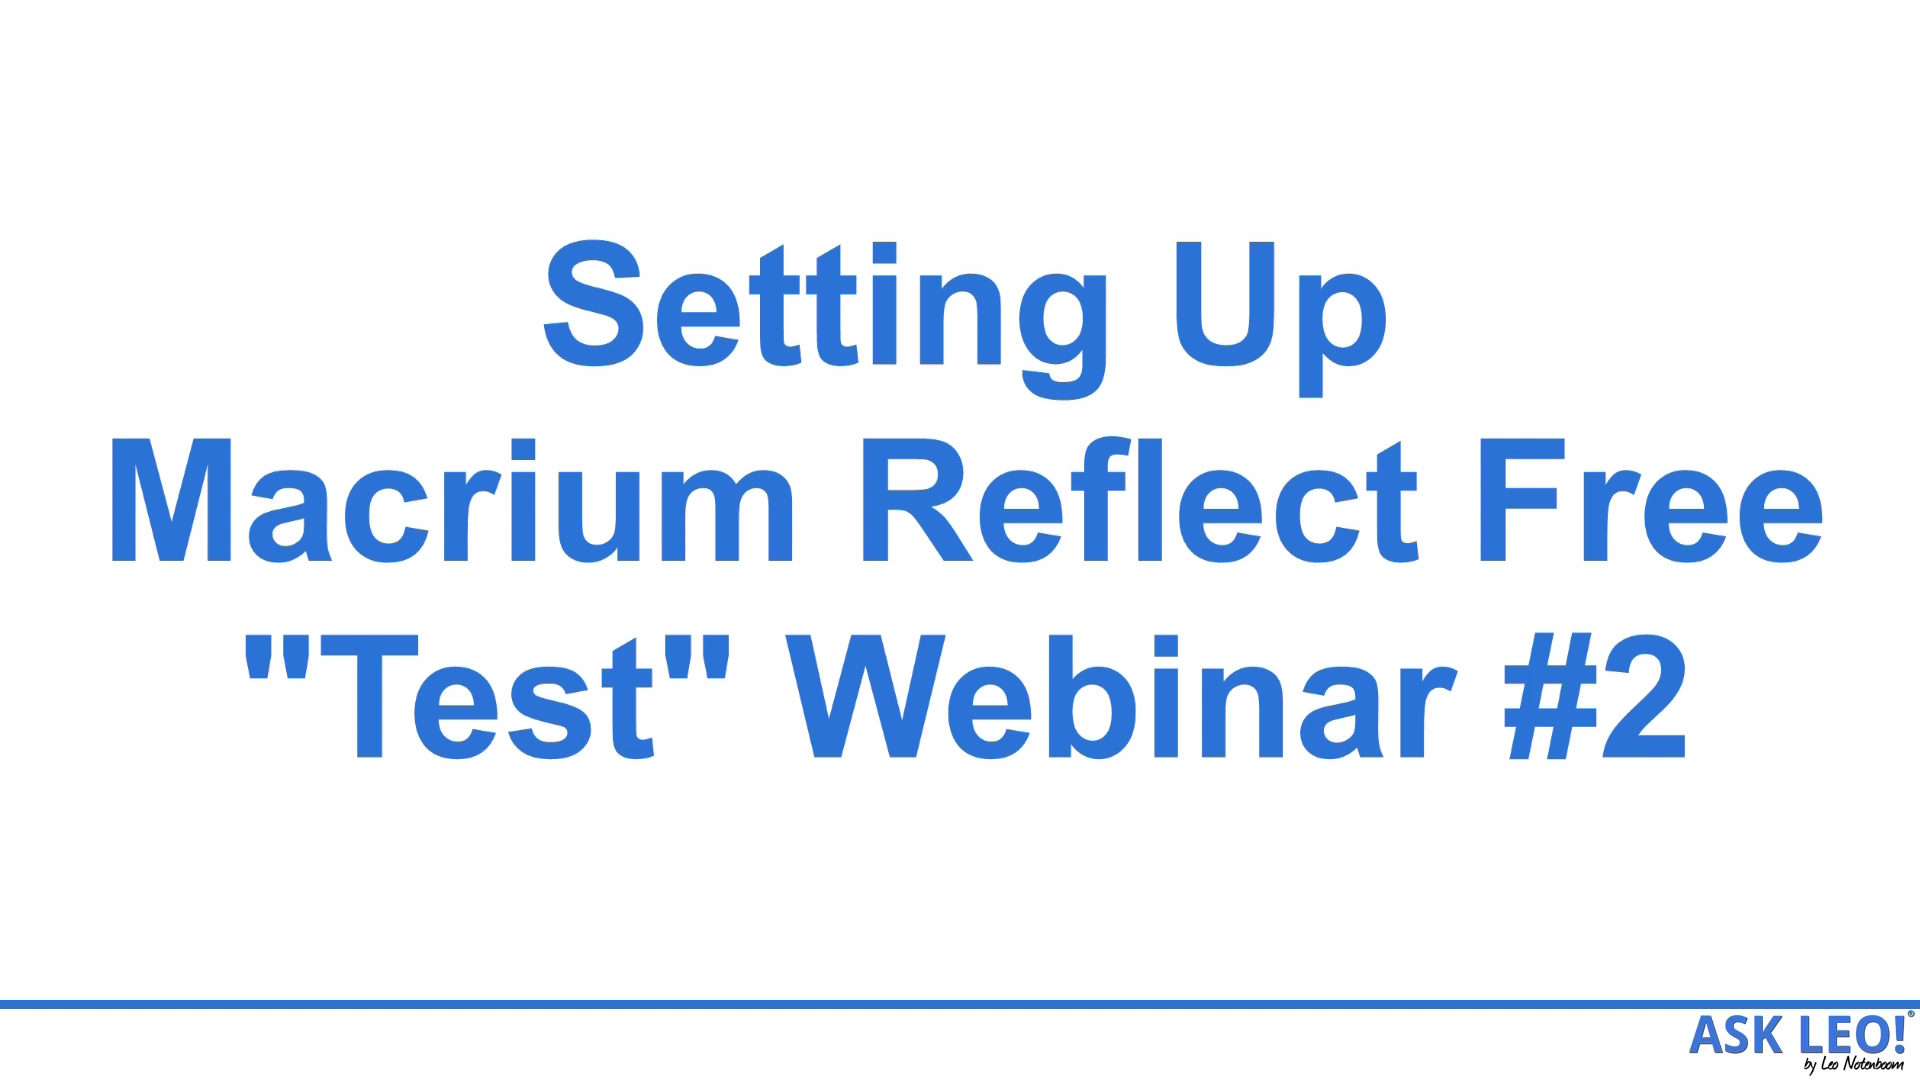 Setting Up Macrium Reflect Free (Webinar #2)